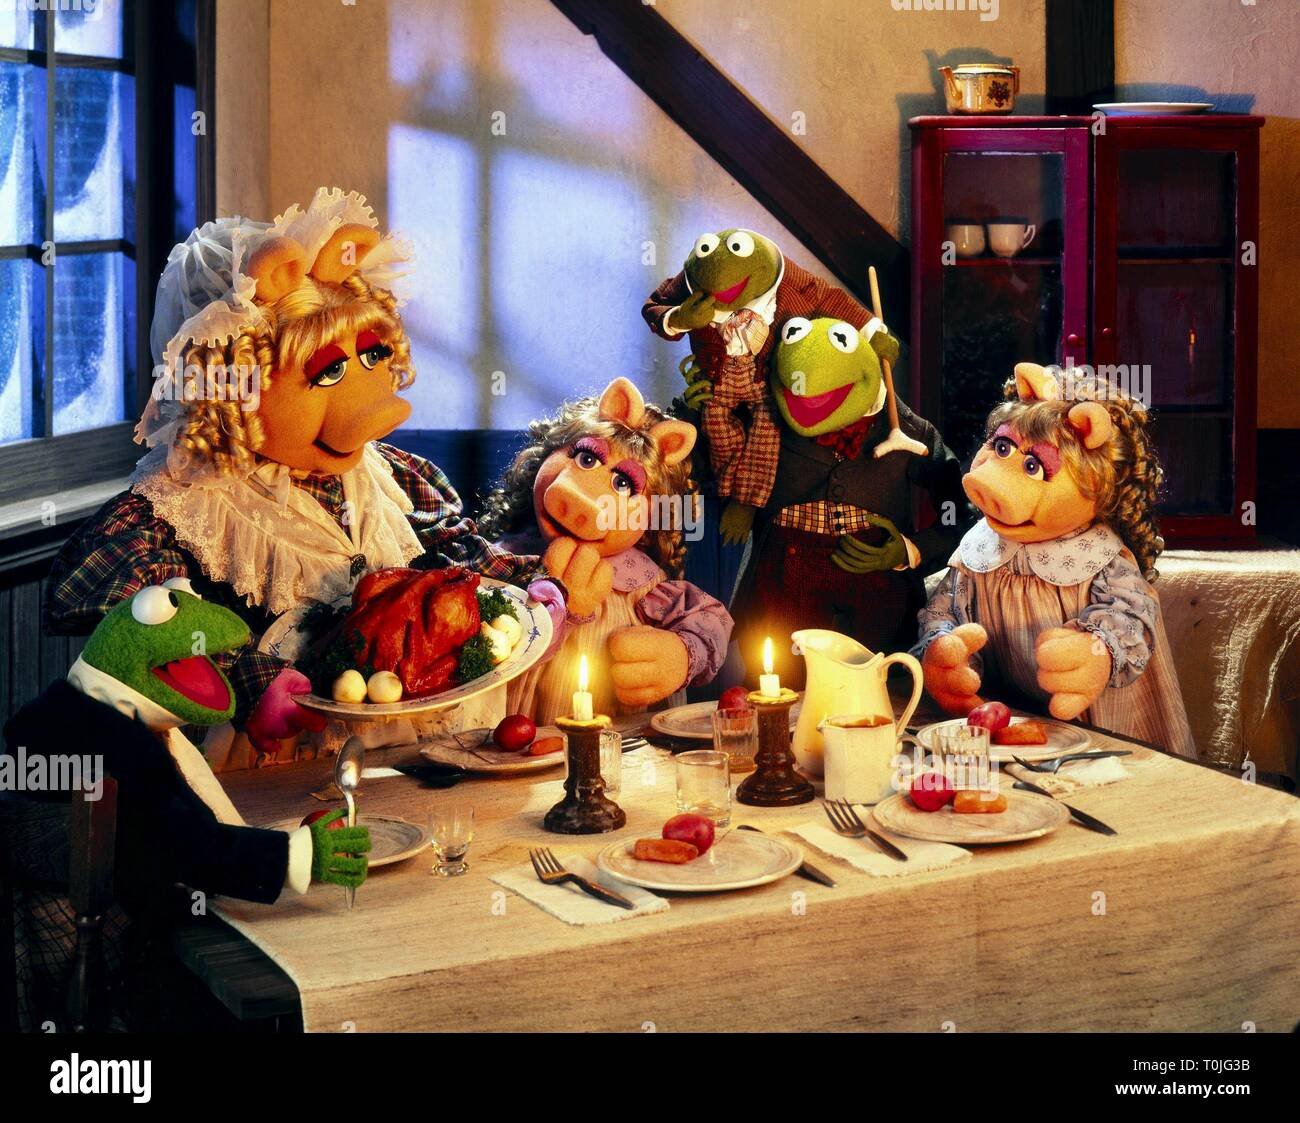 Muppet Christmas Carol.Miss Piggy Tiny Tim Kermit The Frog The Muppet Christmas